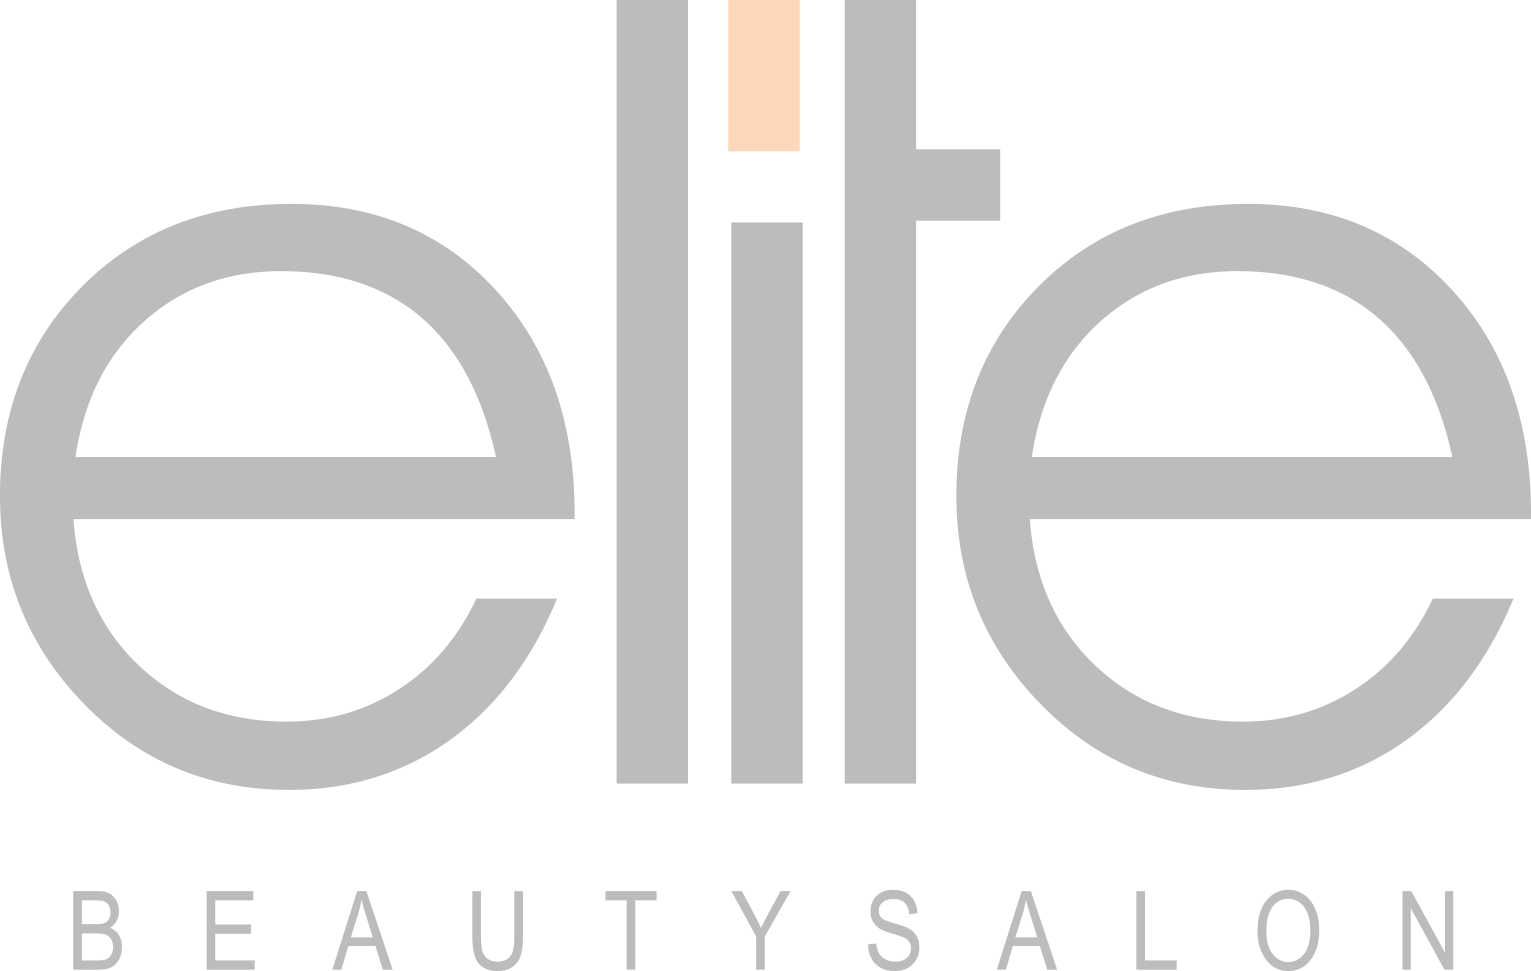 Elite beautysalon